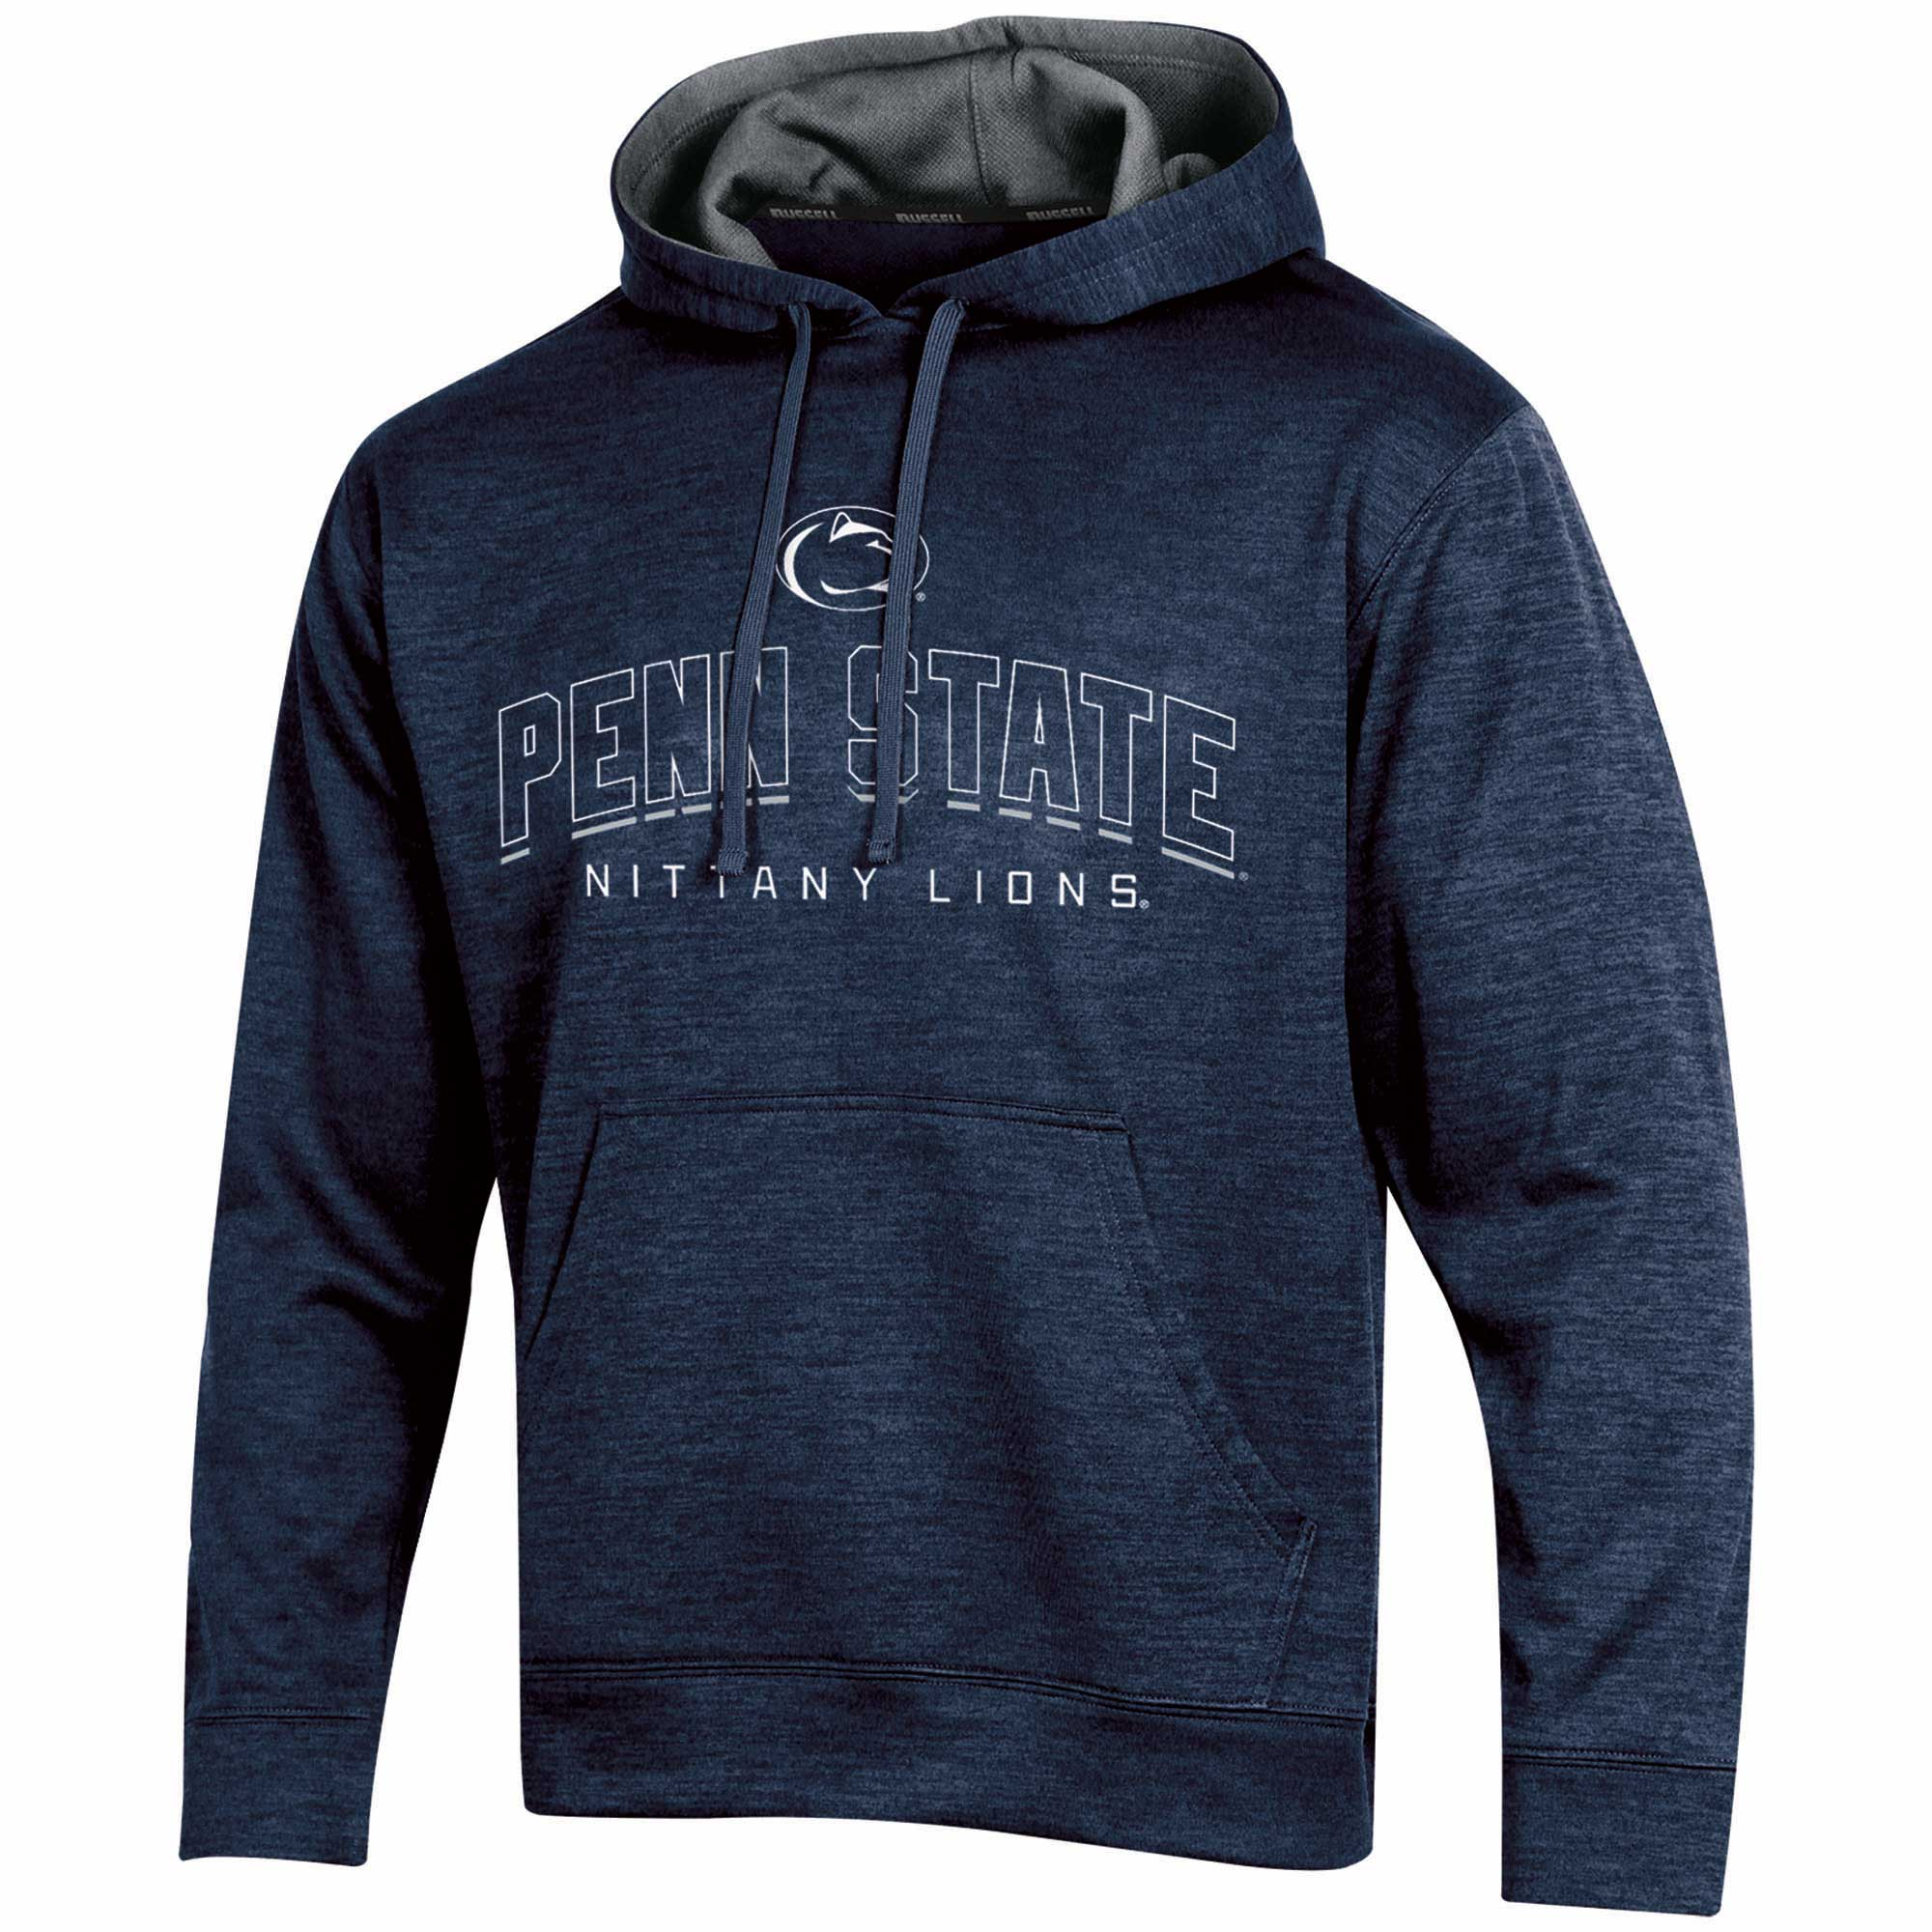 Men's Russell Navy Penn State Nittany Lions Synthetic Pullover Hoodie